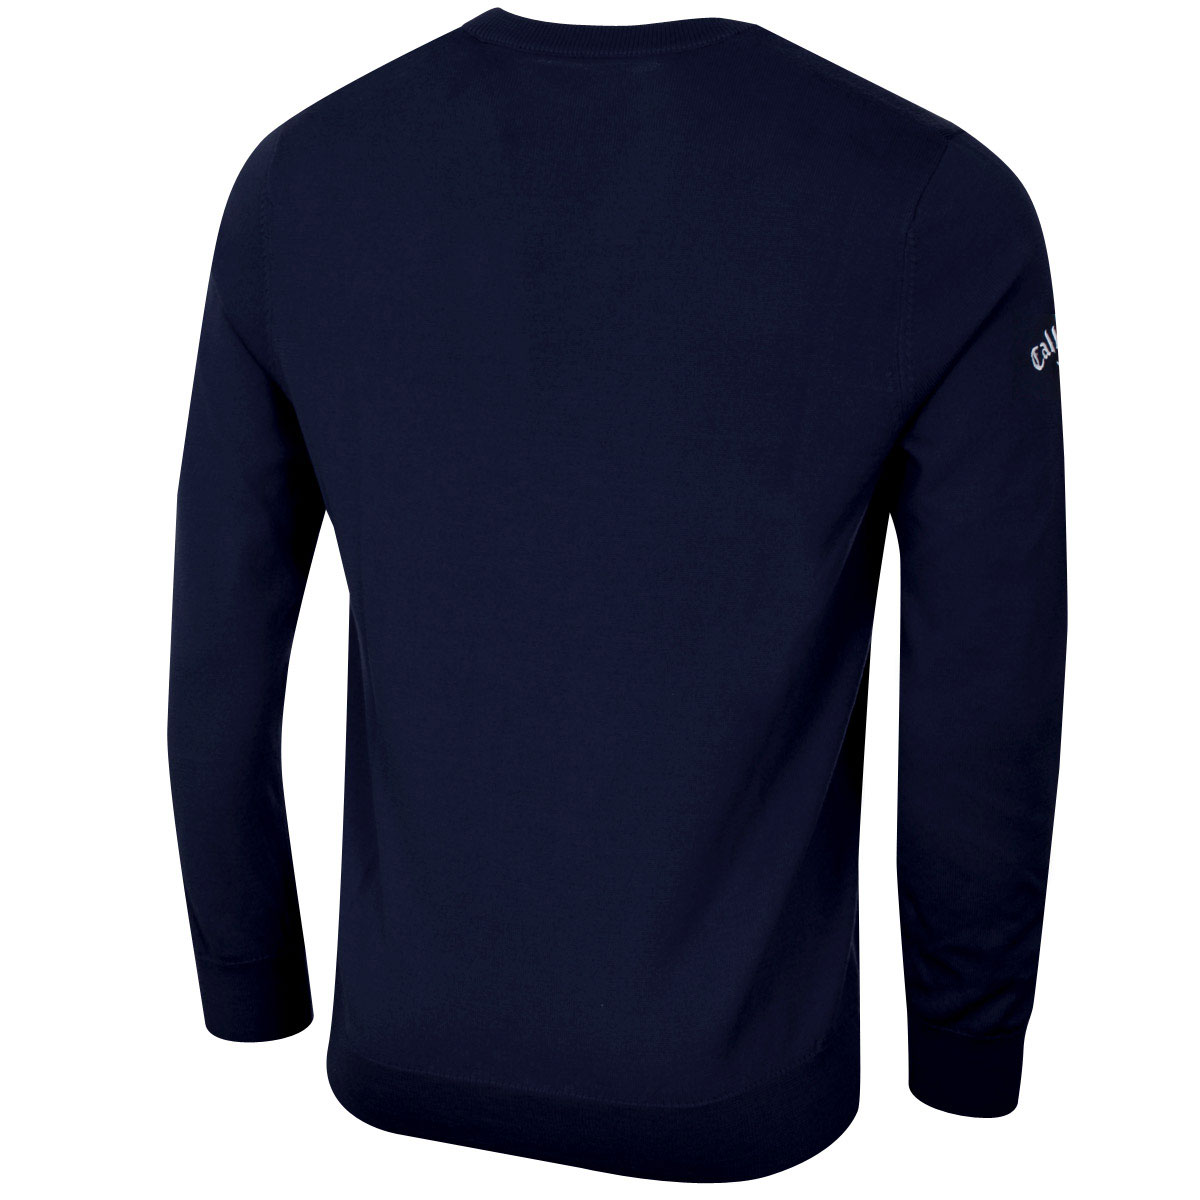 Callaway-Golf-Mens-Ribbed-V-Neck-Merino-Opti-Therm-Sweater-Jumper-64-OFF-RRP thumbnail 10